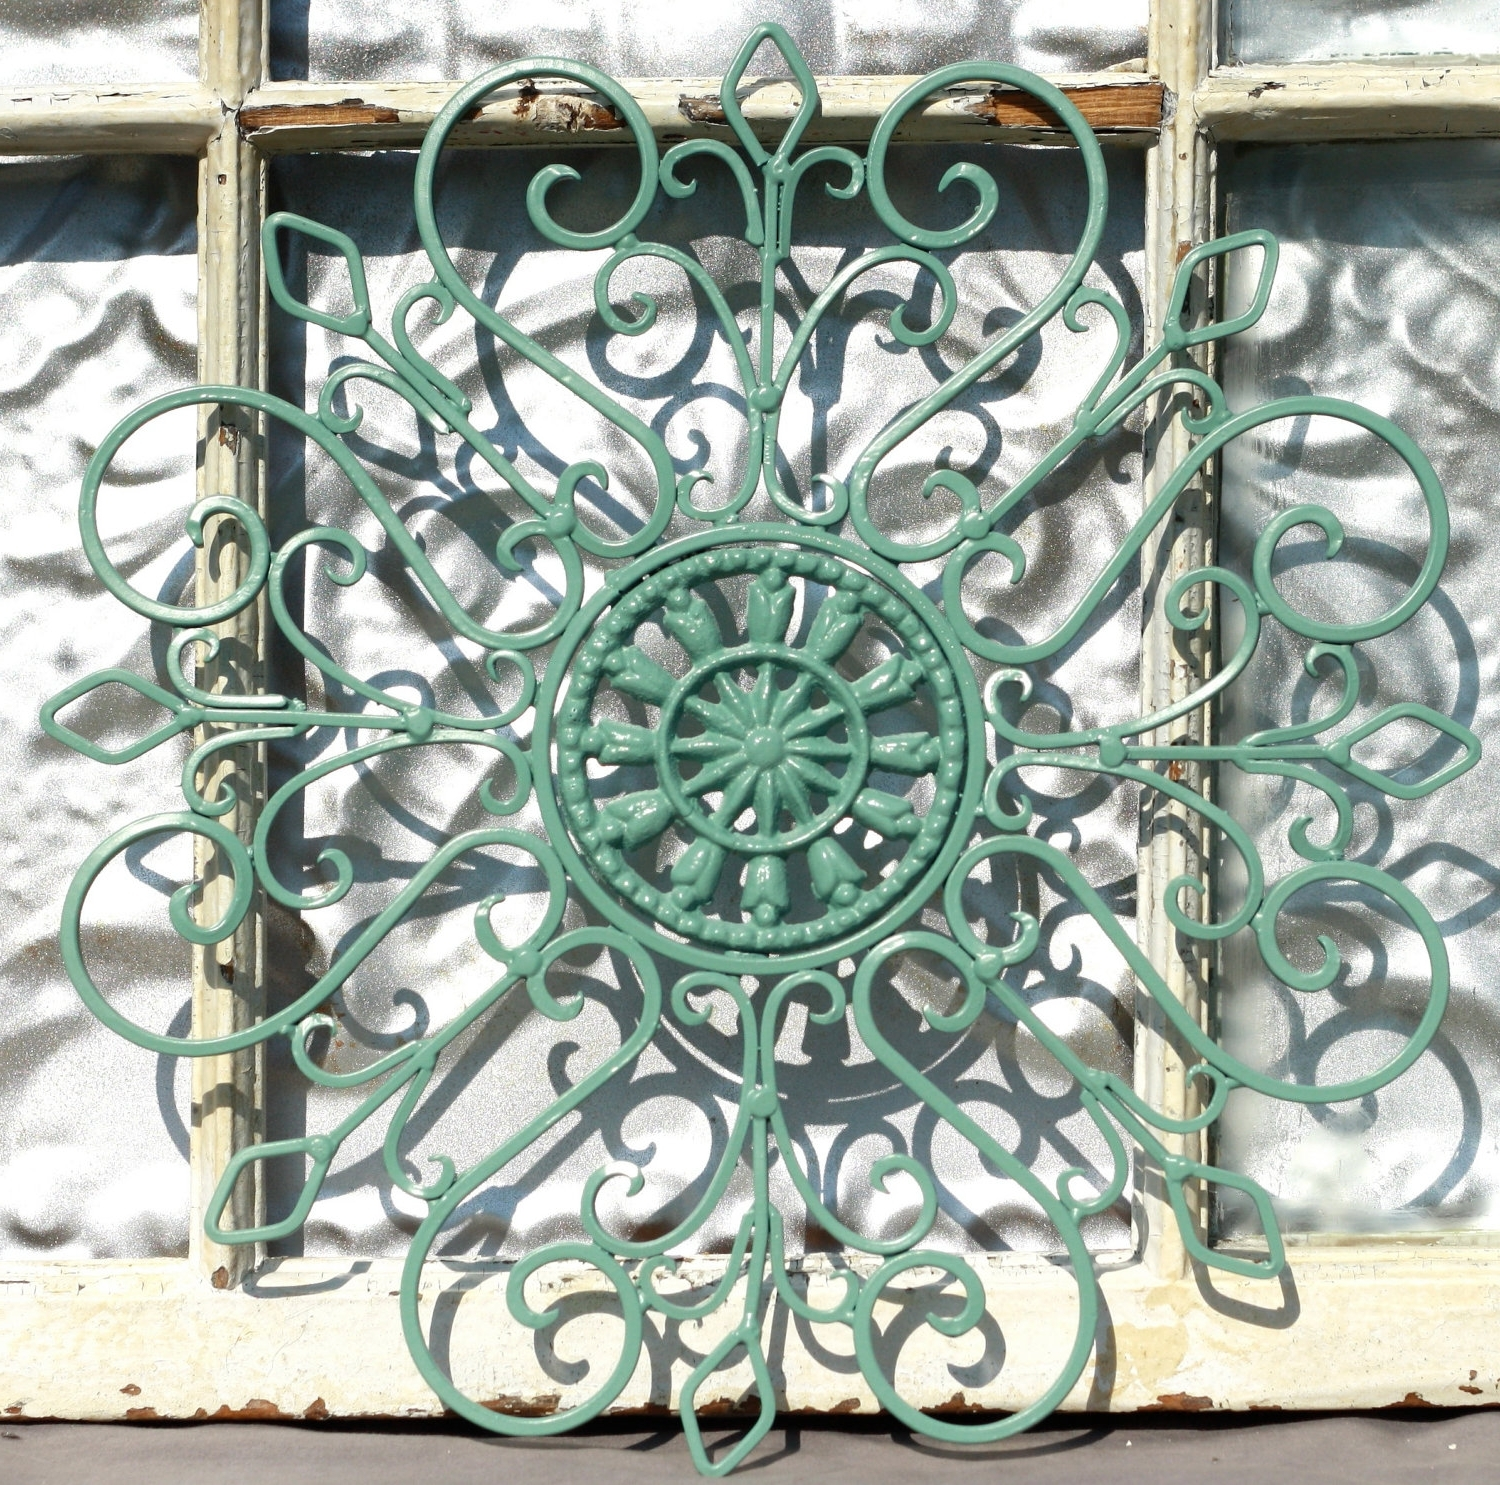 Wrought Iron Wall Decor/ Metal Wall Hanging/ Indoor/ Outdoor Metal Within Most Recent Outdoor Medallion Wall Art (View 3 of 15)